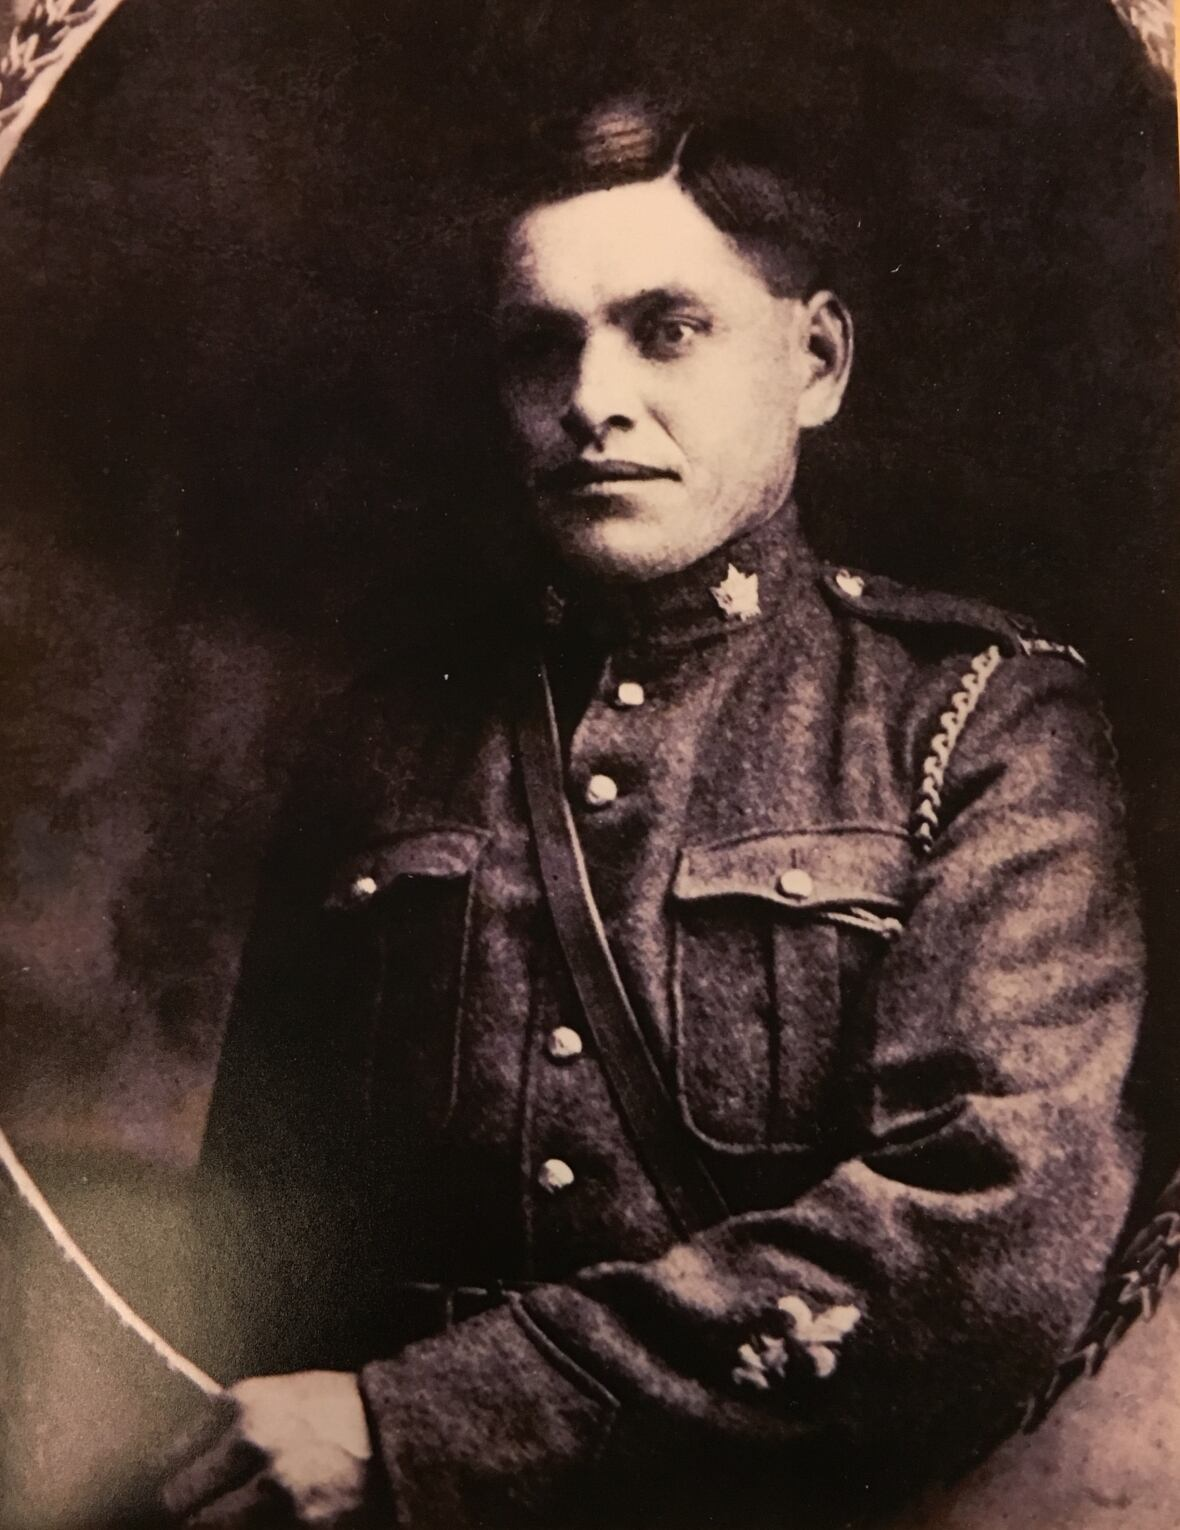 Canadian Fallen Soldier - Lance Corporal HENRY LOUIS NORWEST